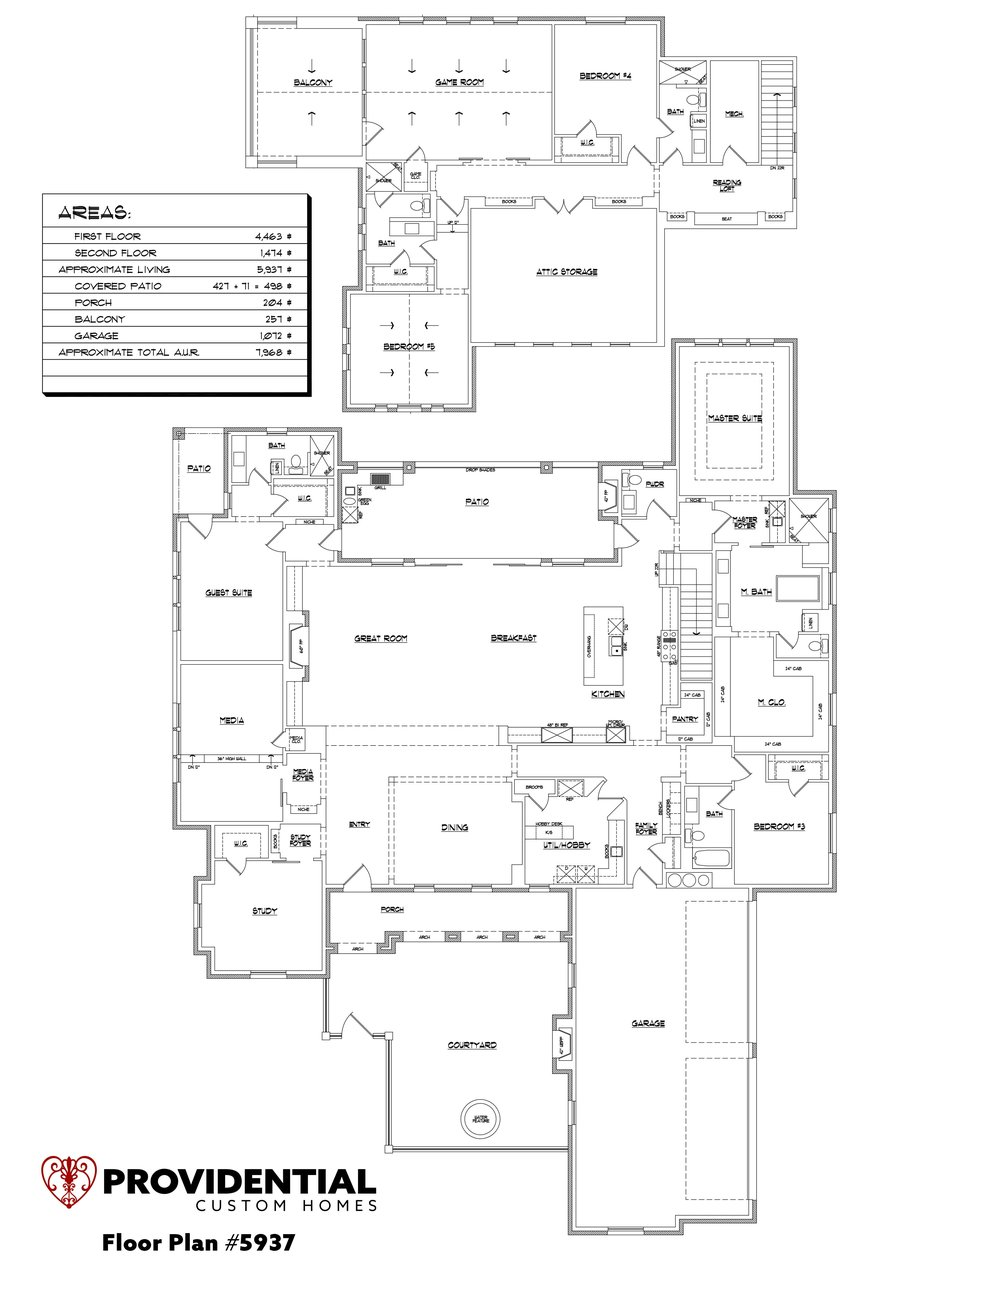 The FLOOR PLAN #5937.jpg